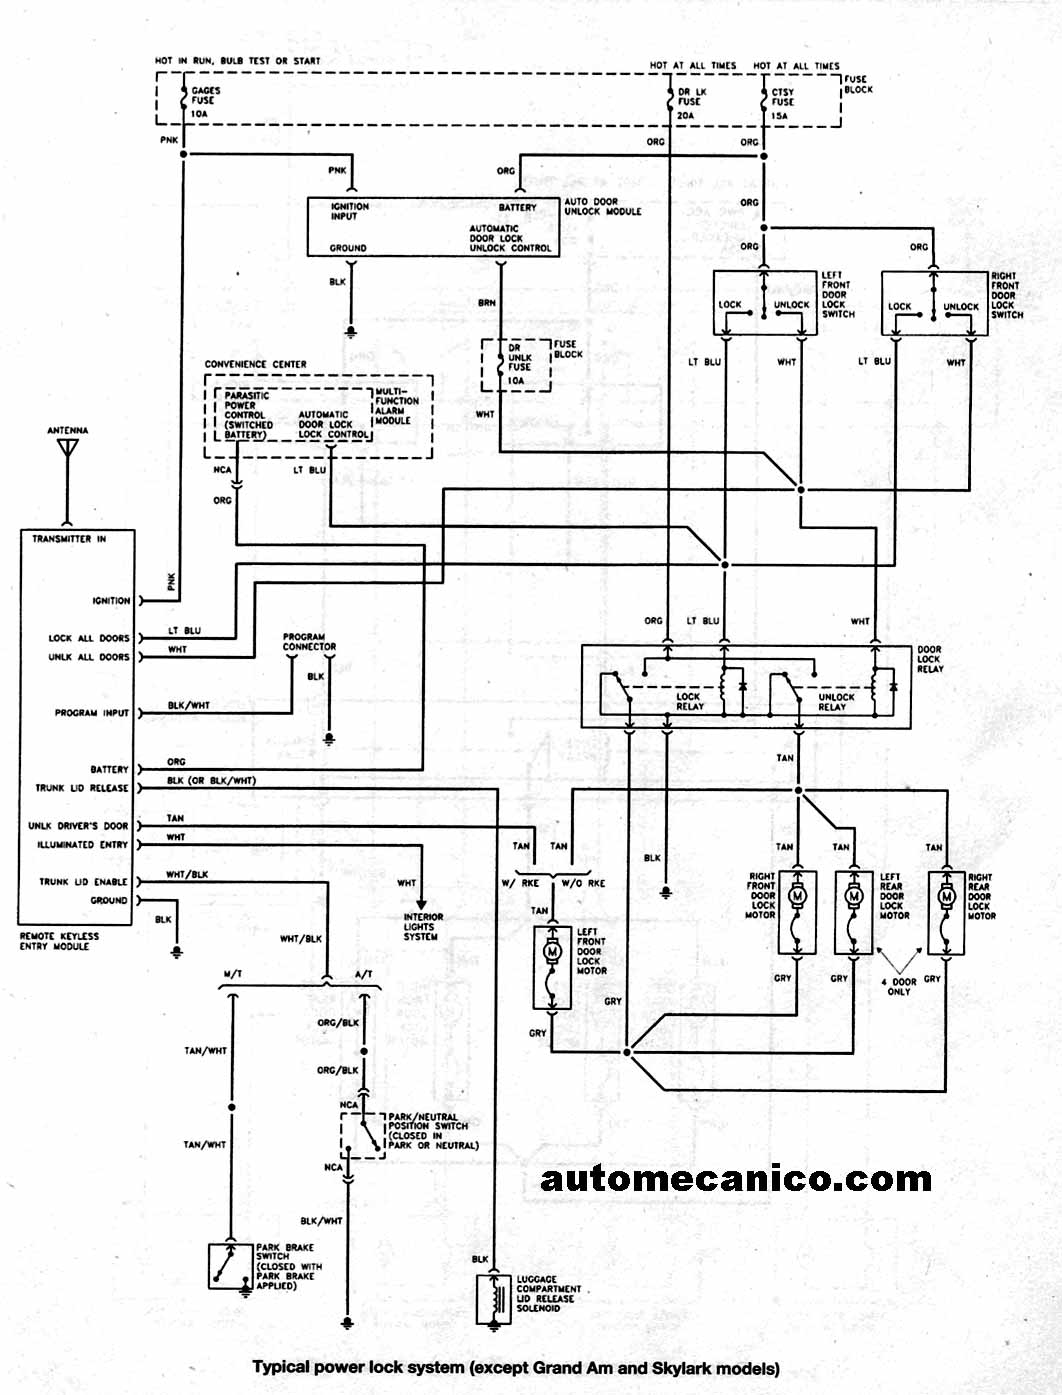 1992 dodge van wiring diagram with Diagramasgm on 1987 Dodge W150 Wiring Diagram Schematic likewise Dak Wiring Diagram moreover 6521 moreover Ramcharger besides Four Wheel drive.